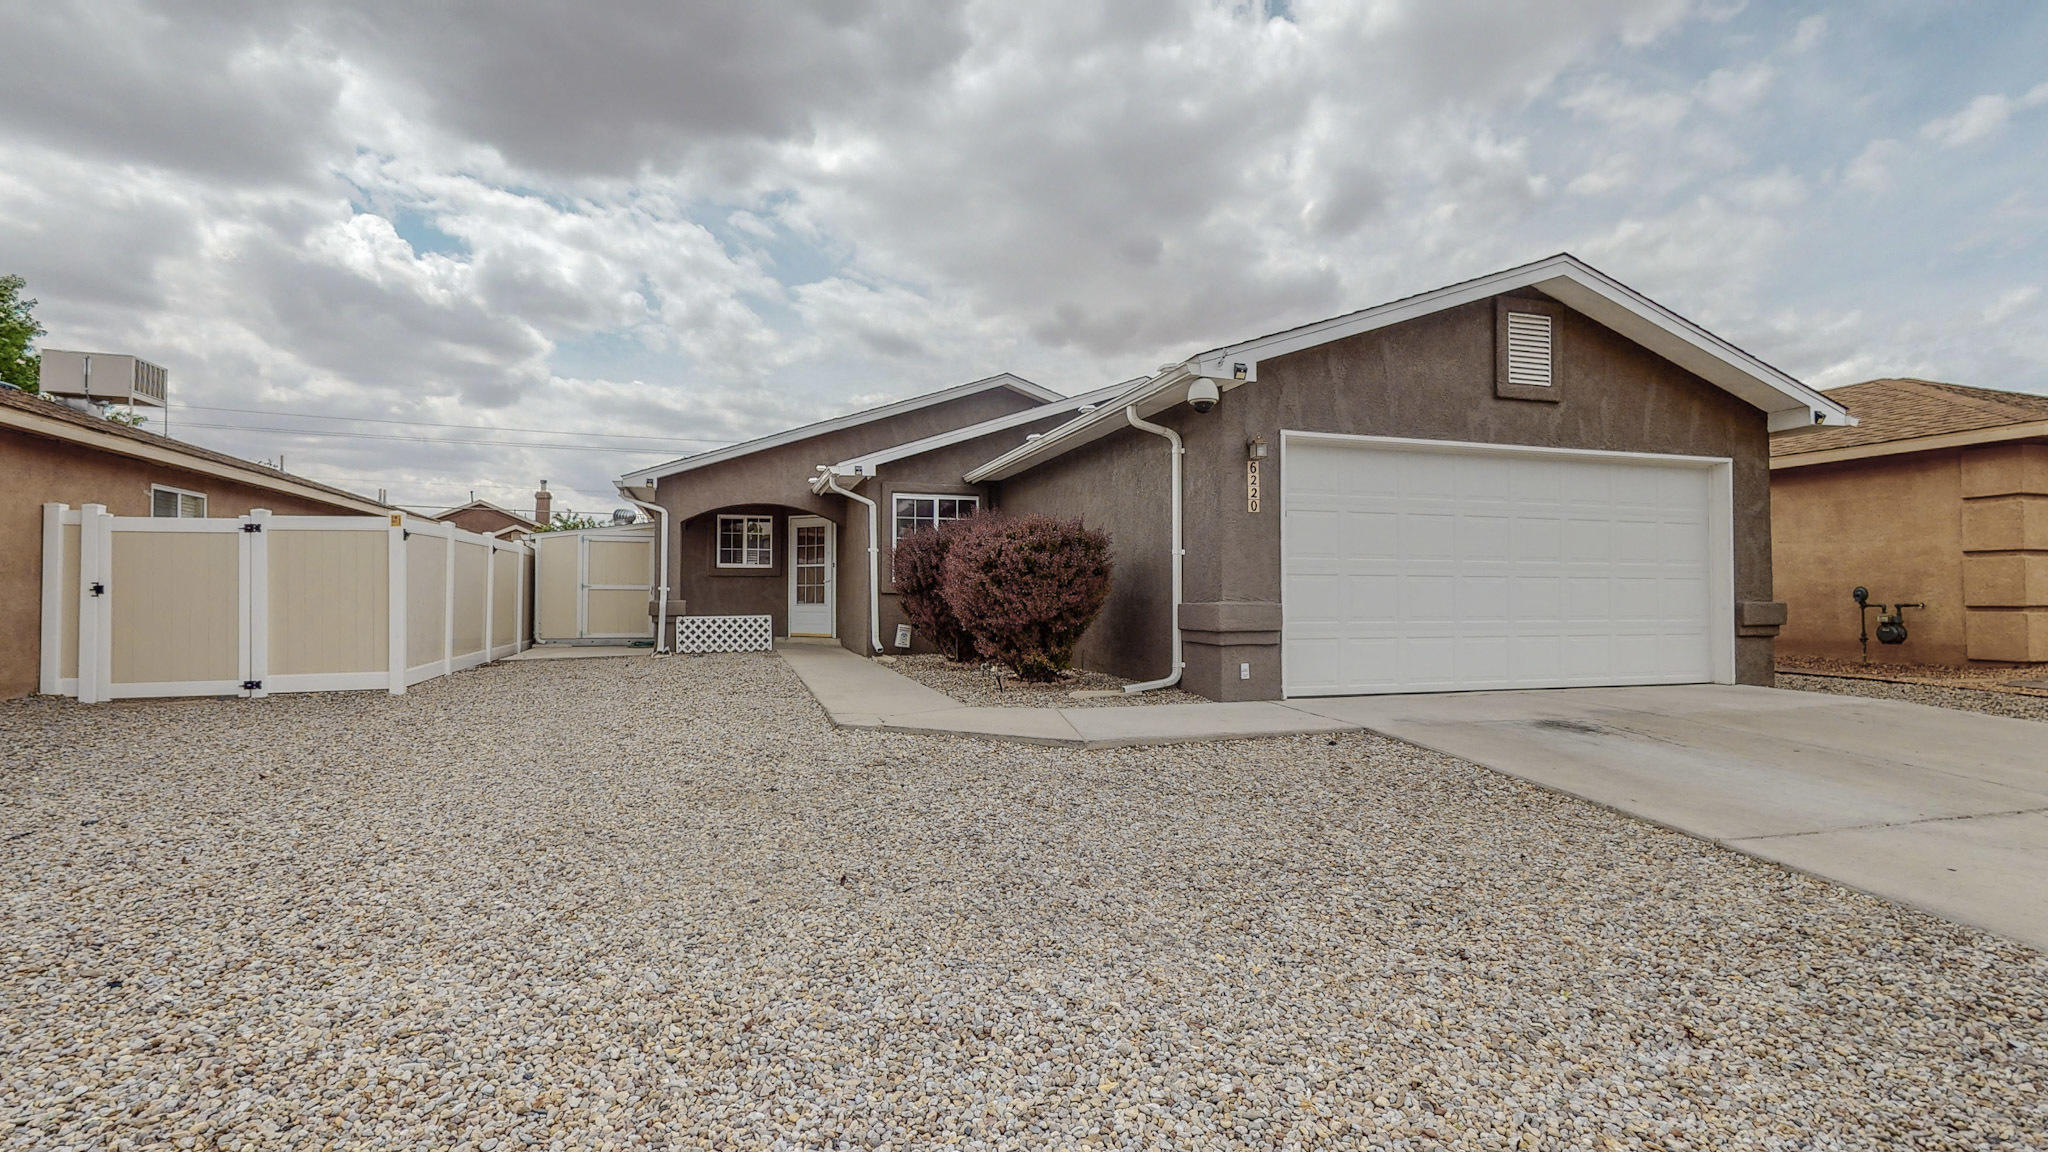 Must see this beautiful home. The features include, brand new roof 2021, tile throughout, ceiling fans, AC 2017, special locks, window tint, security alarm & cameras.This home is located in a great area close to freeway access, parks, restaurants & shopping.